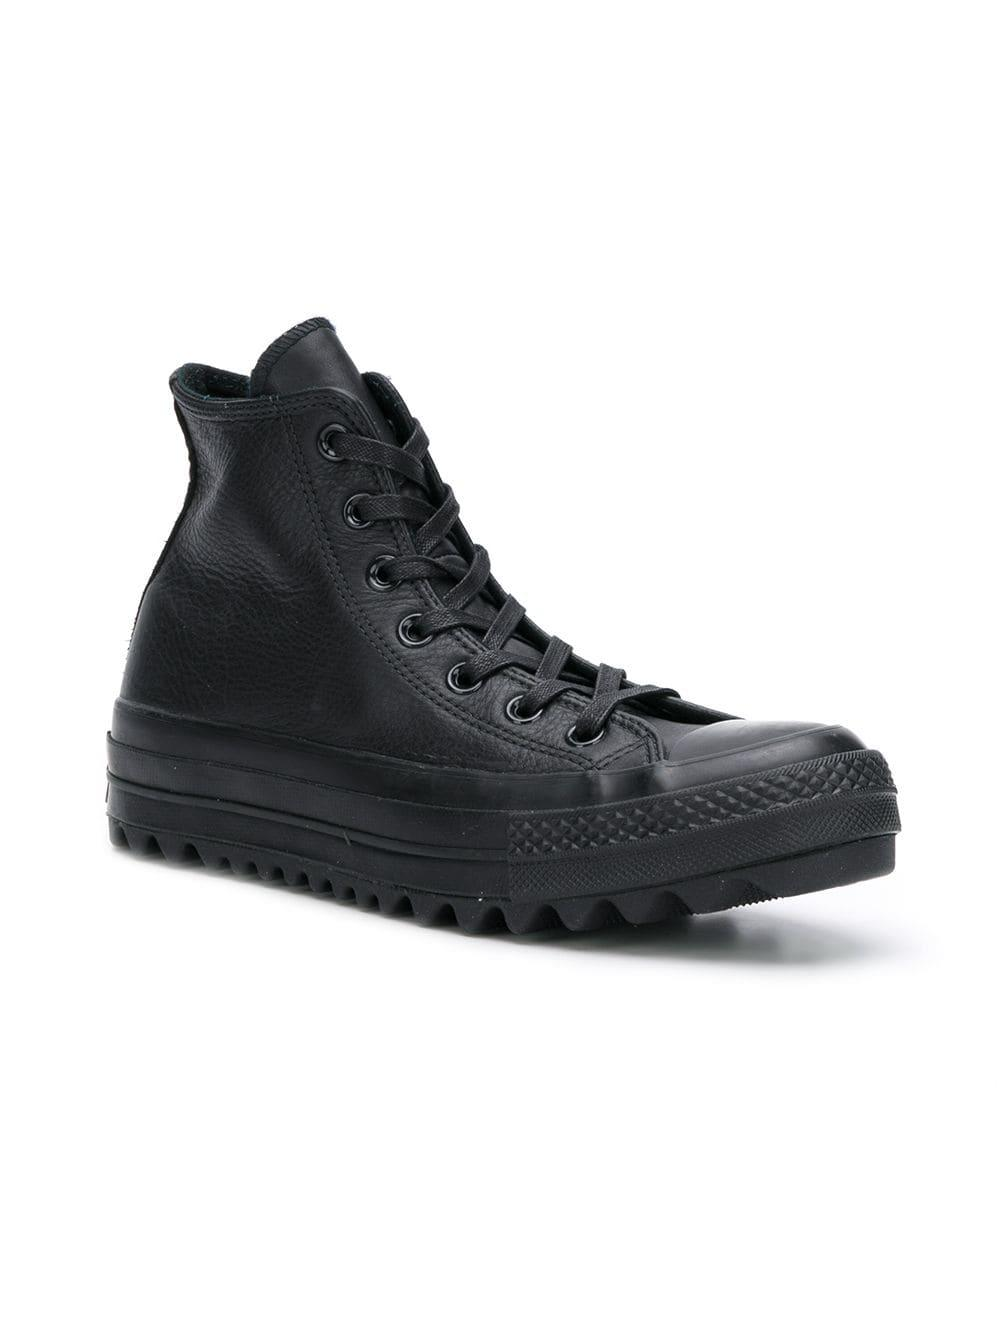 887a0cc8d9f Converse - Black Chuck Taylor Leather Sneakers for Men - Lyst. View  fullscreen